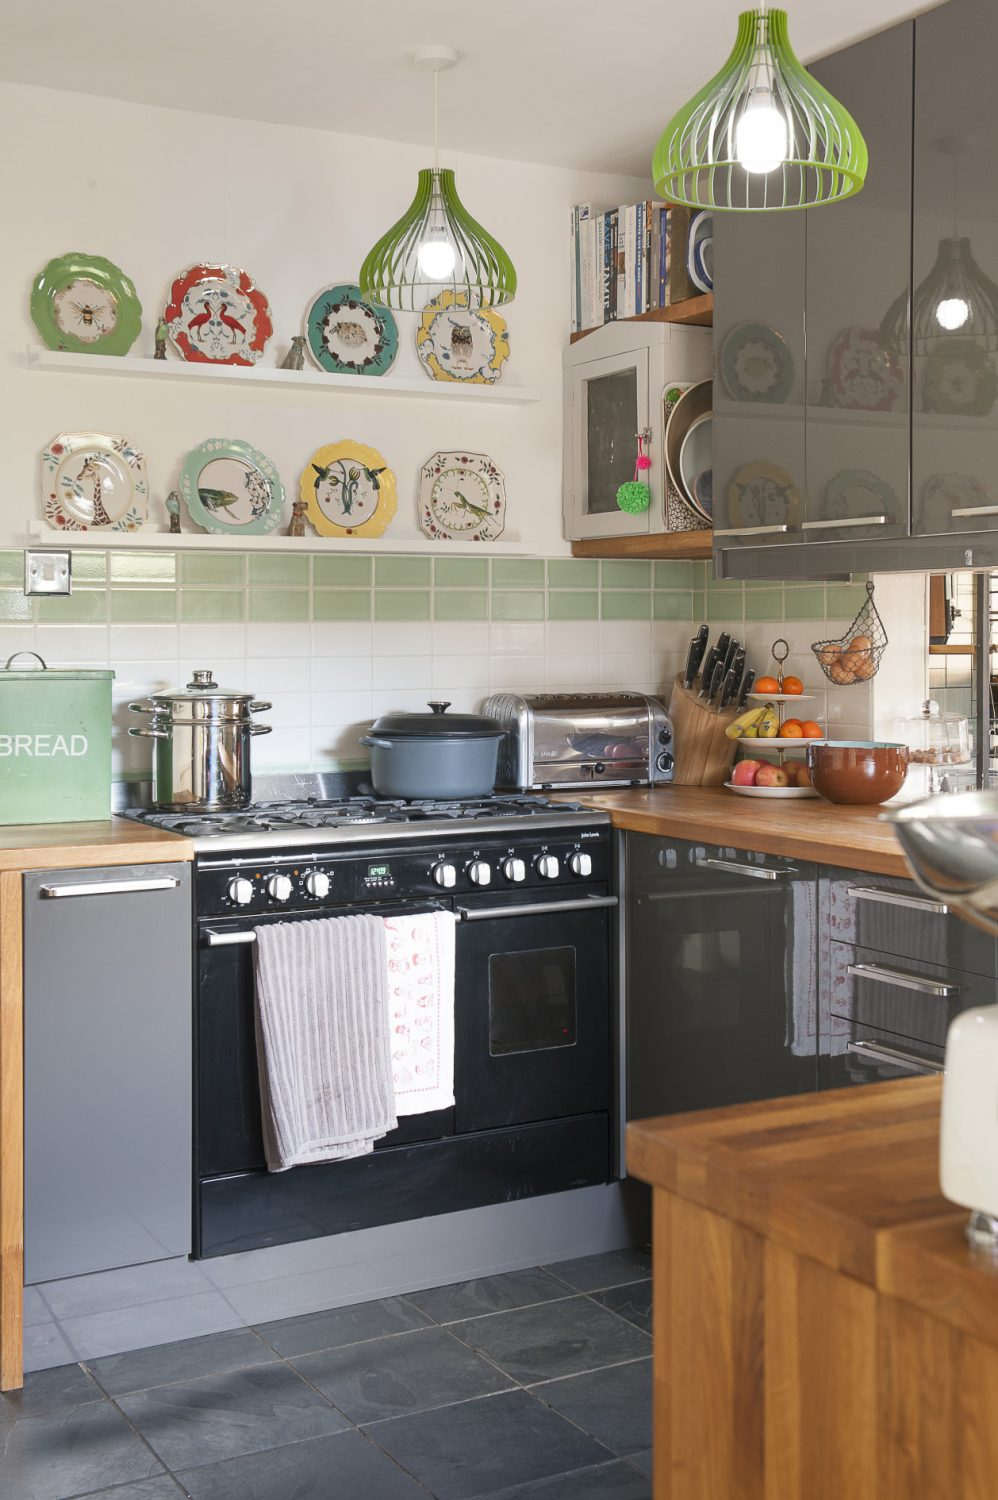 In the kitchen there's an eclectic mix of items including a collection of Lou Rota plates featuring bugs, bees and birds that Sam found in Anthropologie